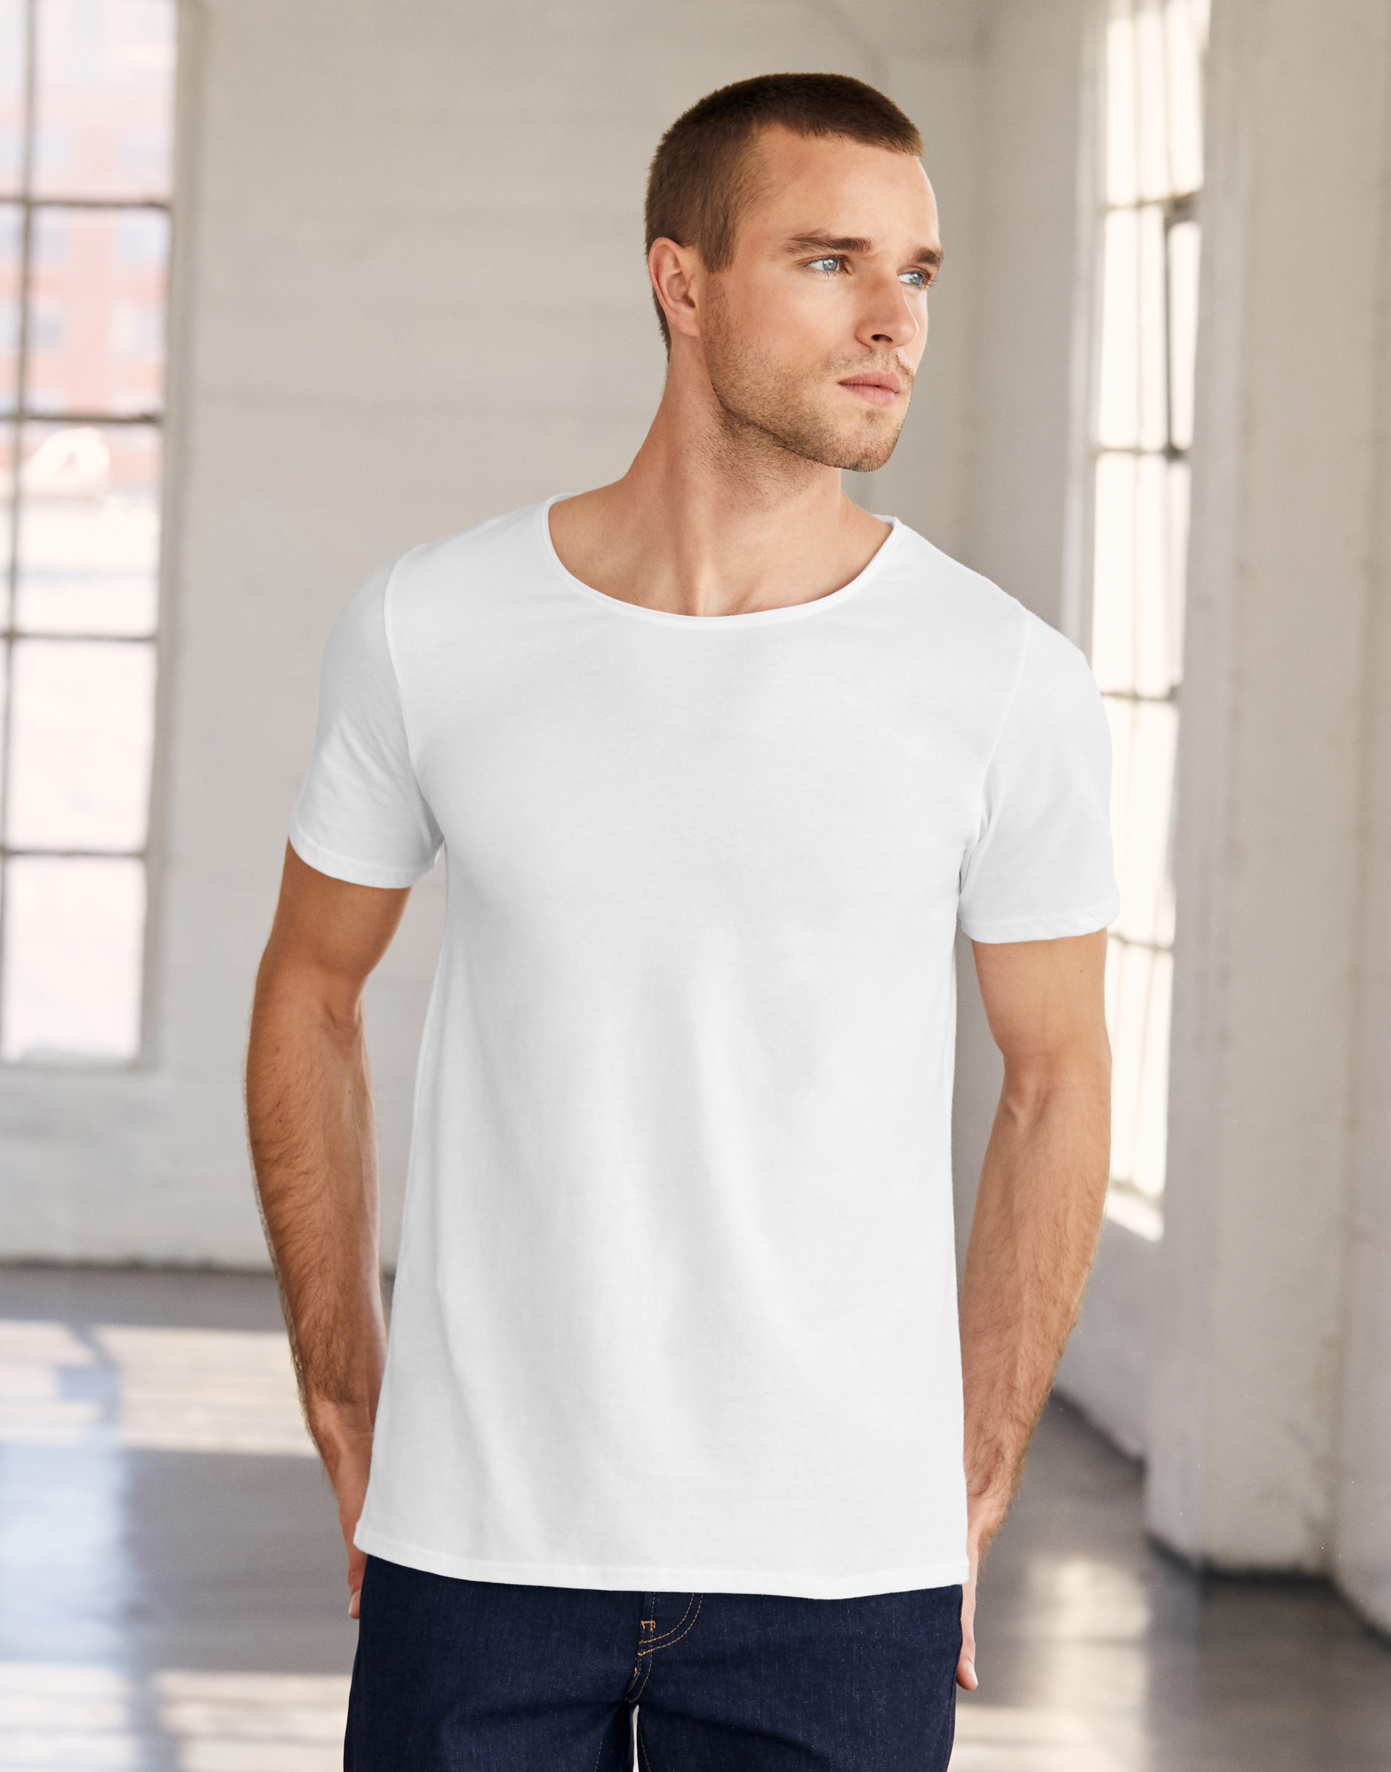 Bella+Canvas Men's Jersey Raw New Tee - Artikel 173.06 - 3014